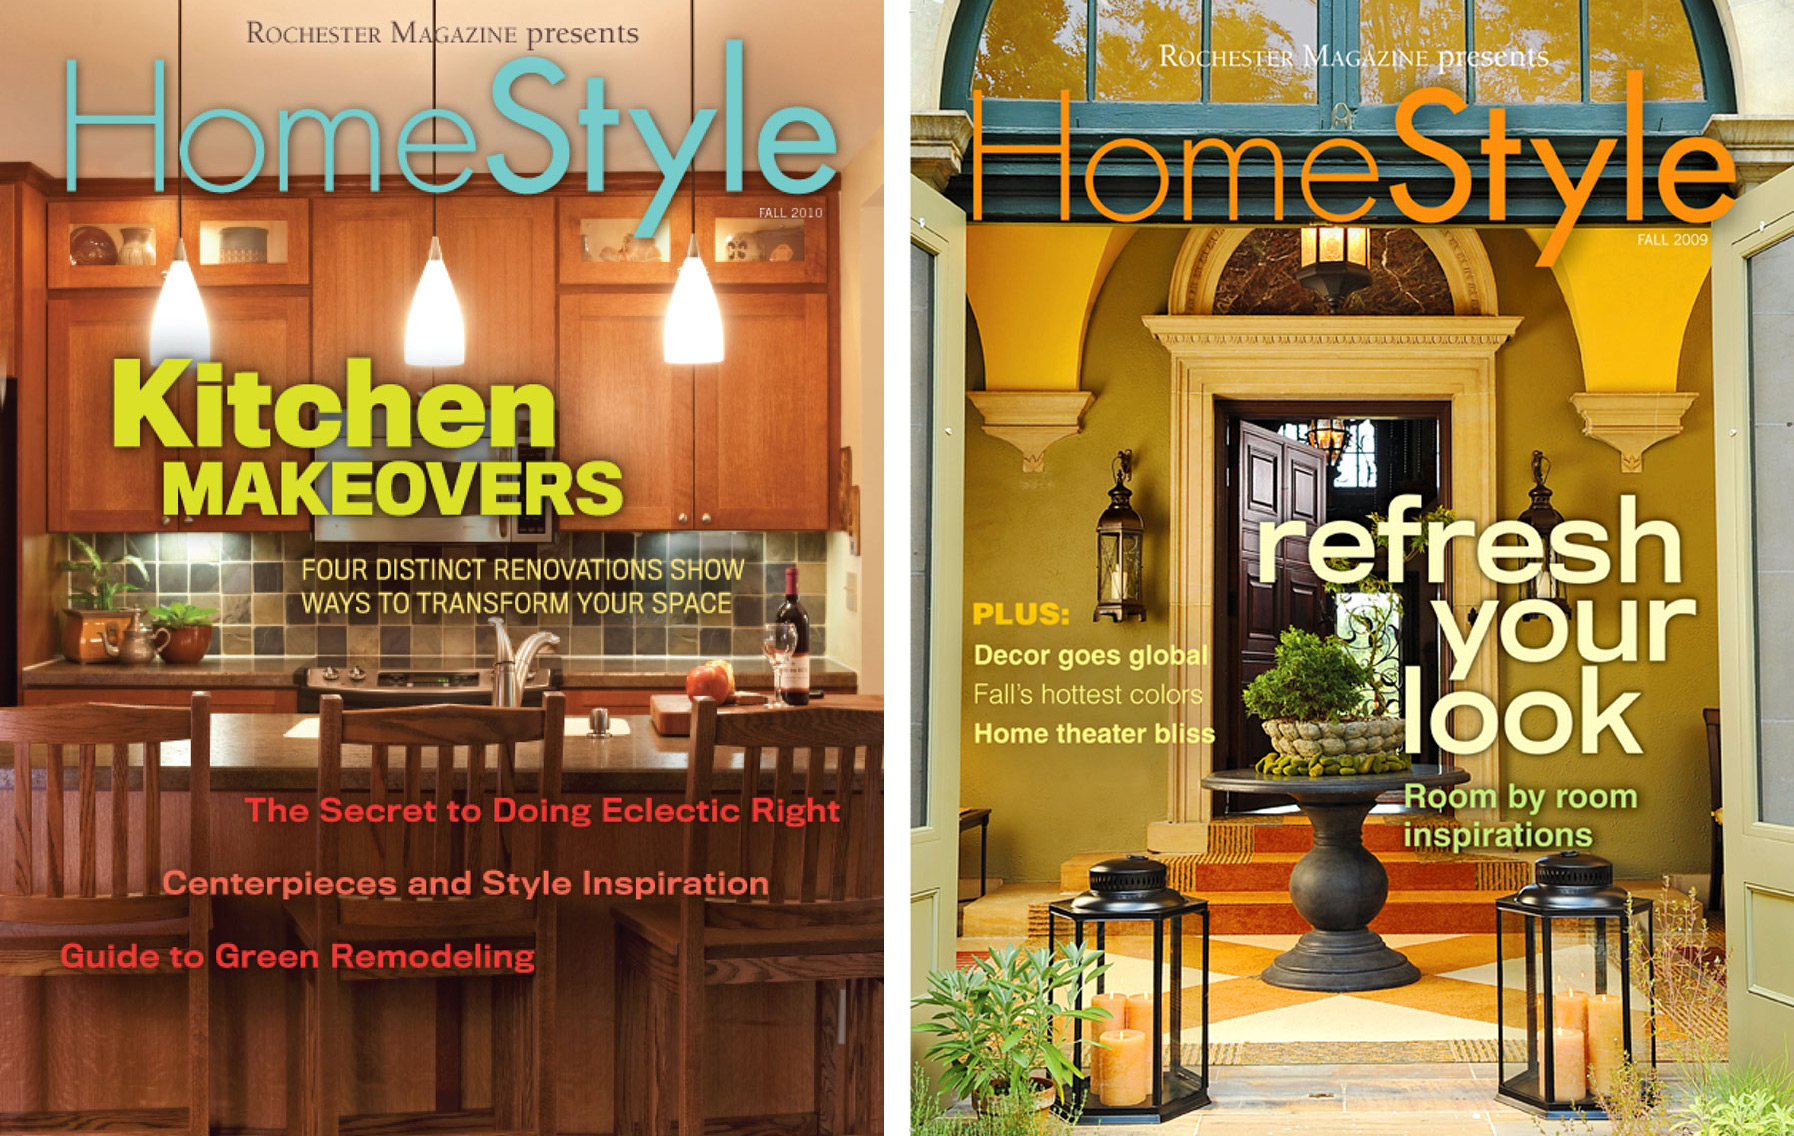 homestyle-covers-2.jpg